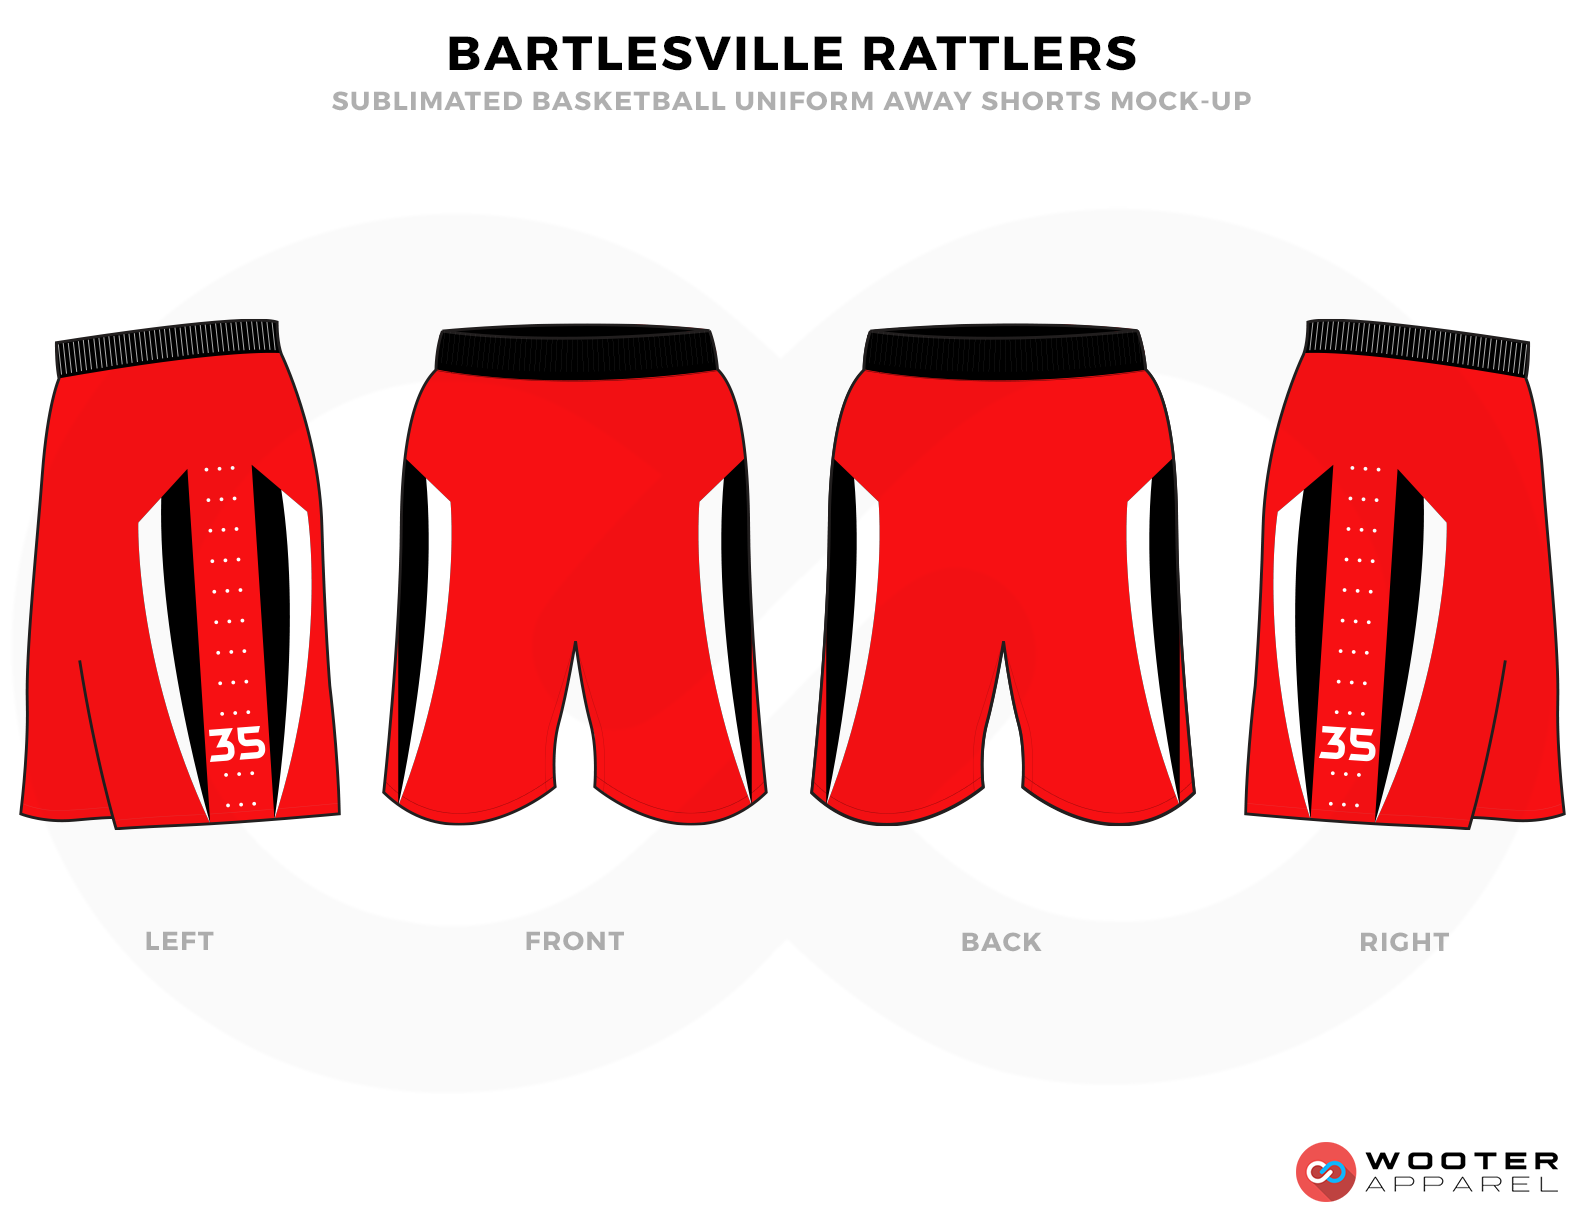 BARTLESVILLE RATTLERS Red Black and White Basketball Uniforms, Shorts